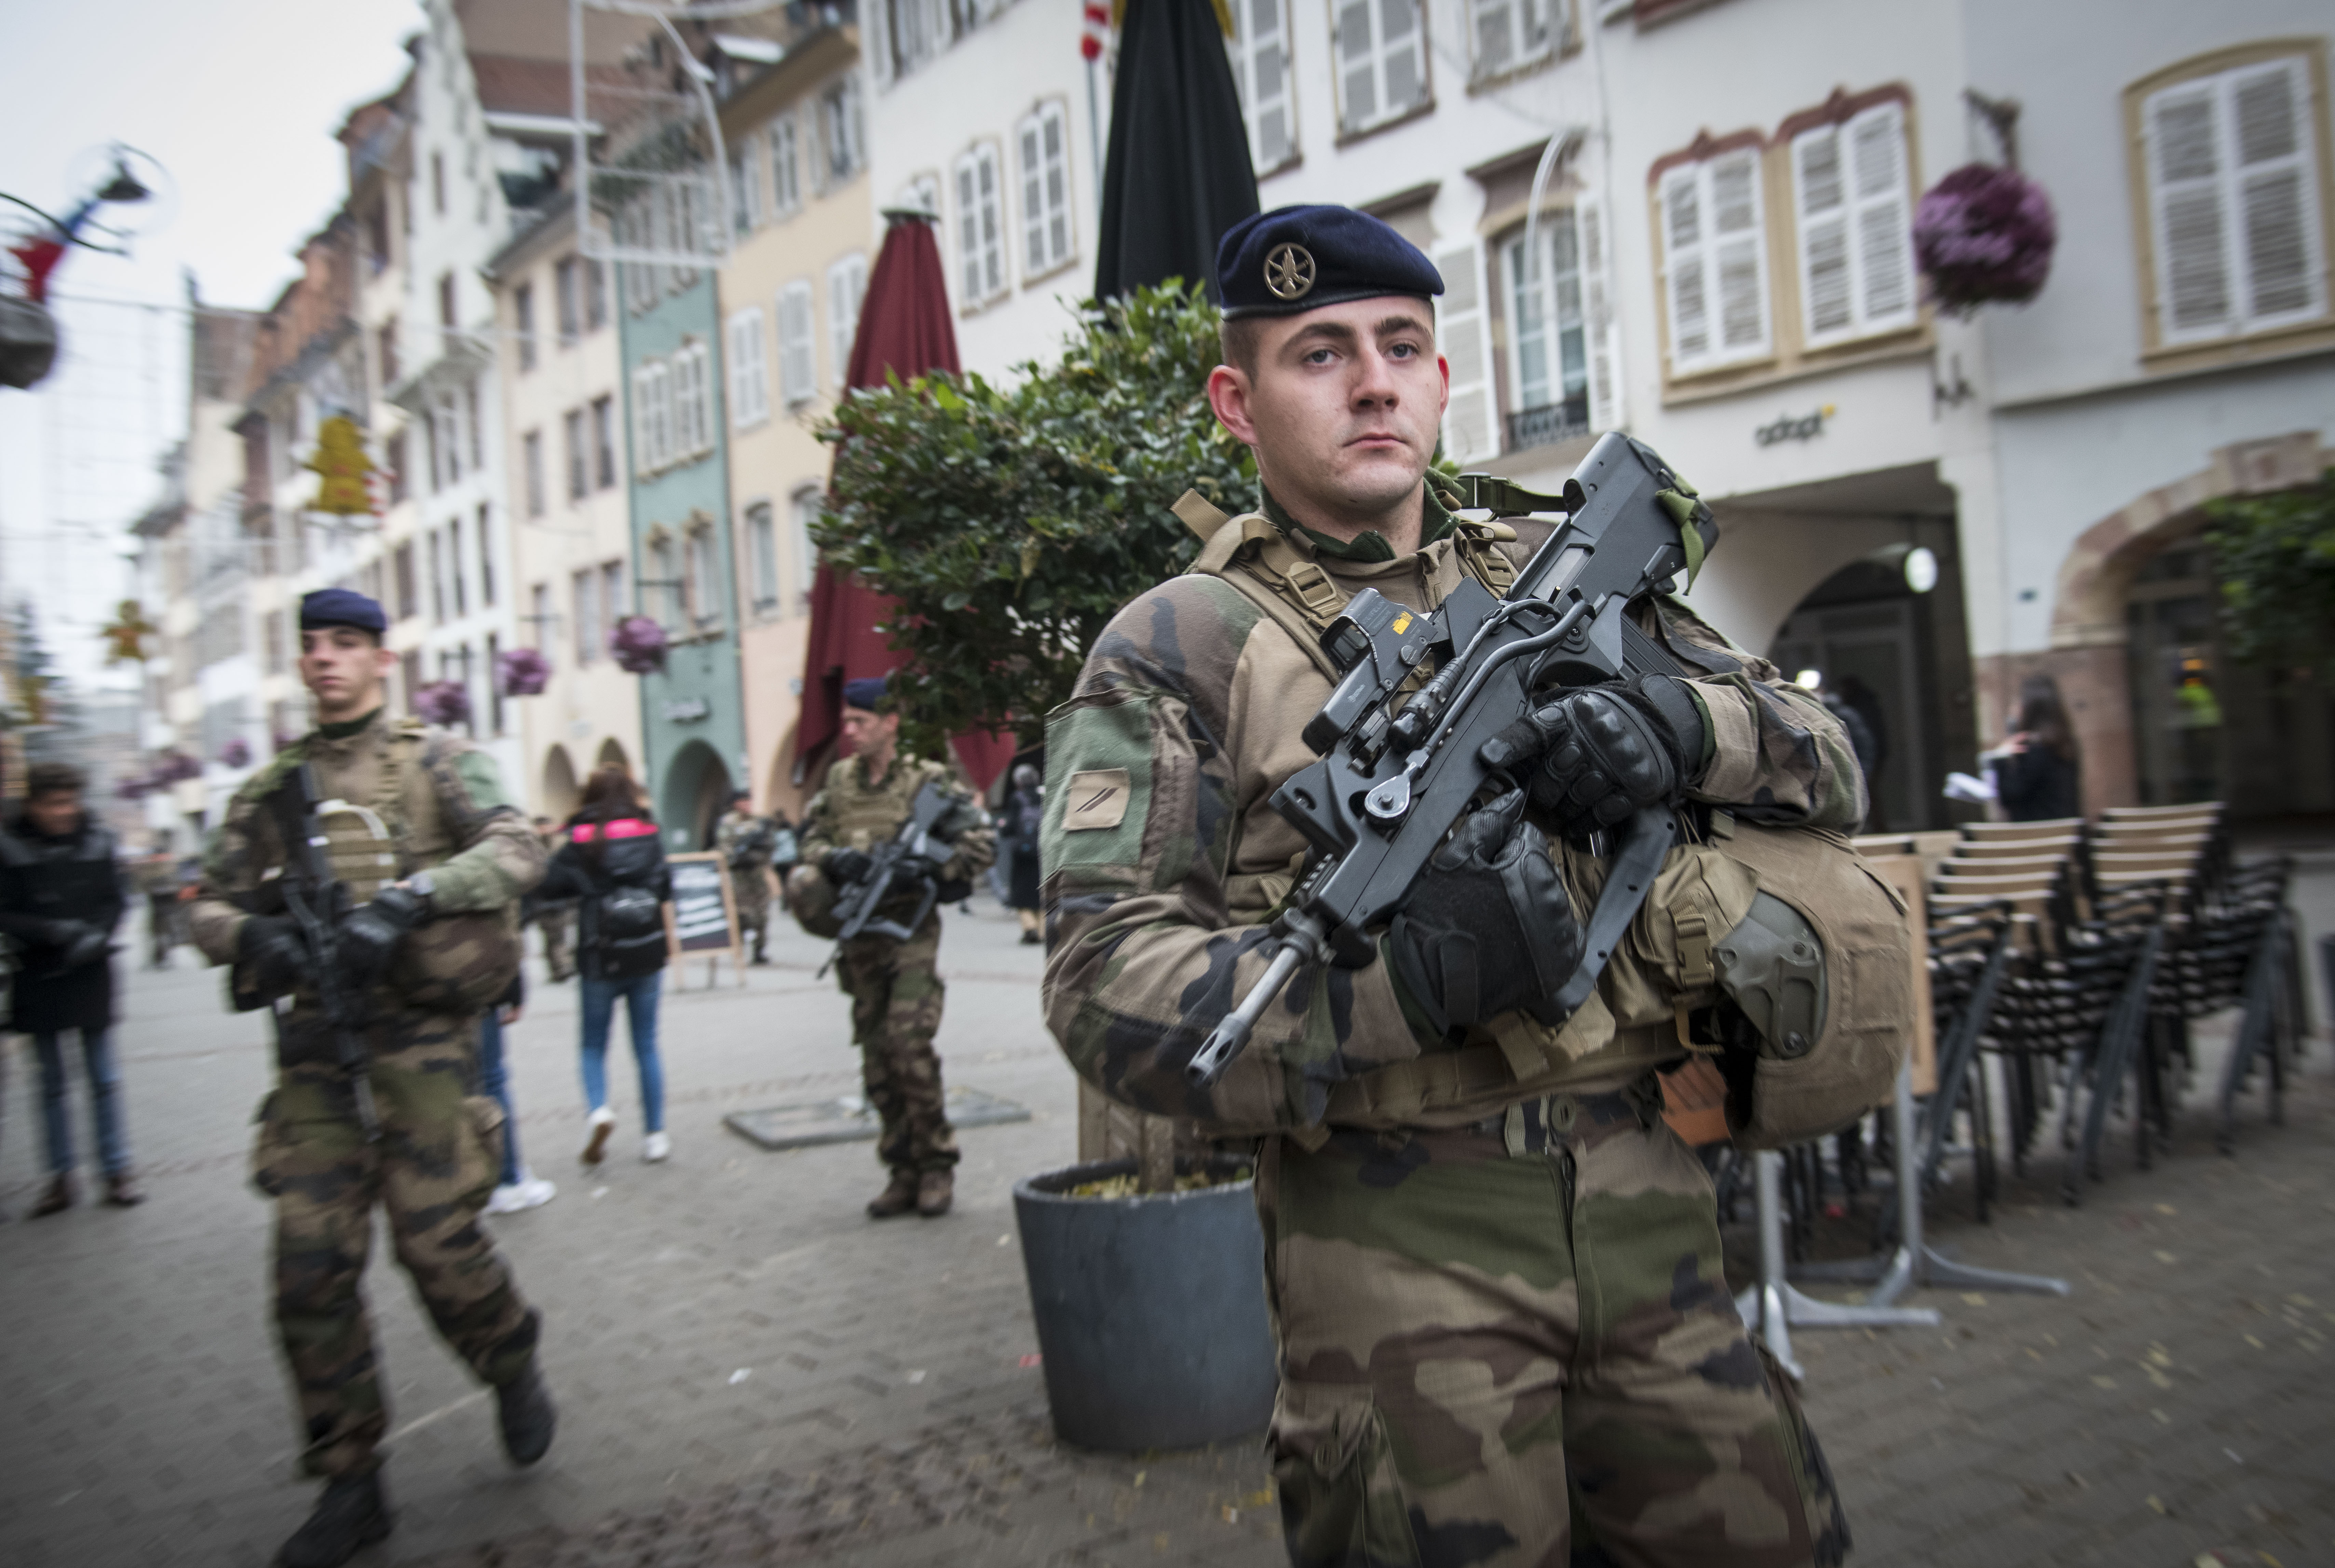 STRASBOURG, FRANCE - DECEMBER 12: Soldiers patrol near the Christmas market where, yesterday, a man shot 14 people, killing at least three, on December 12, 2018 in Strasbourg, France. Police have identified the man as Cherif Chekatt, a French citizen on a police terror watch-list. Chekatt exchanged gunfire with soldiers after the attack, is reportedly injured and is still on the loose. (Photo by Thomas Lohnes/Getty Images)